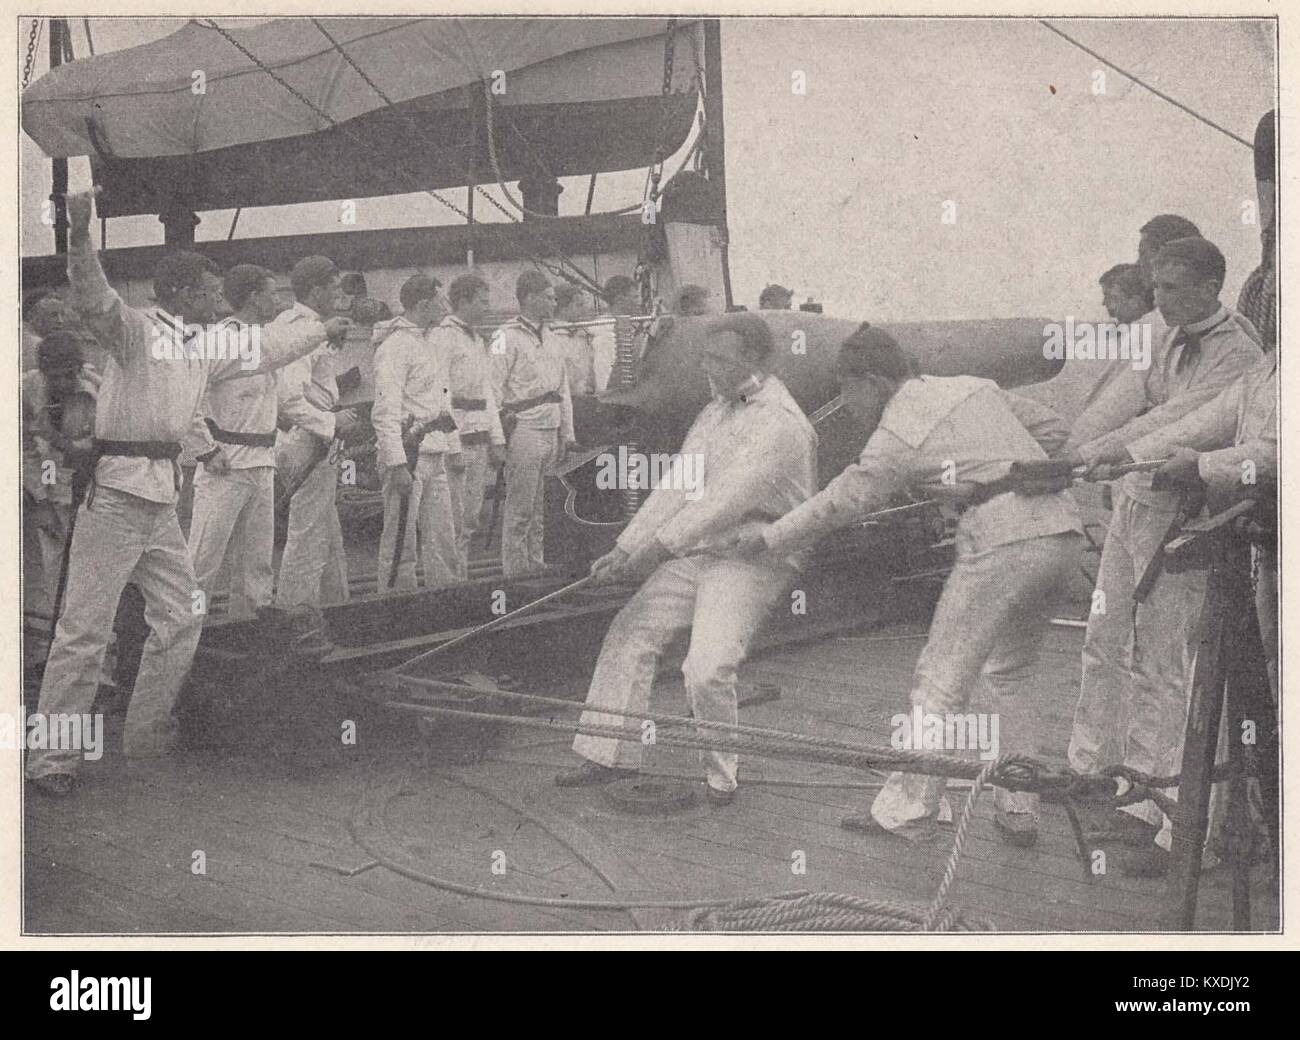 Gunnery Practice on a United States Training ship - The use of enormous guns aboard battleships does not consist - Stock Image